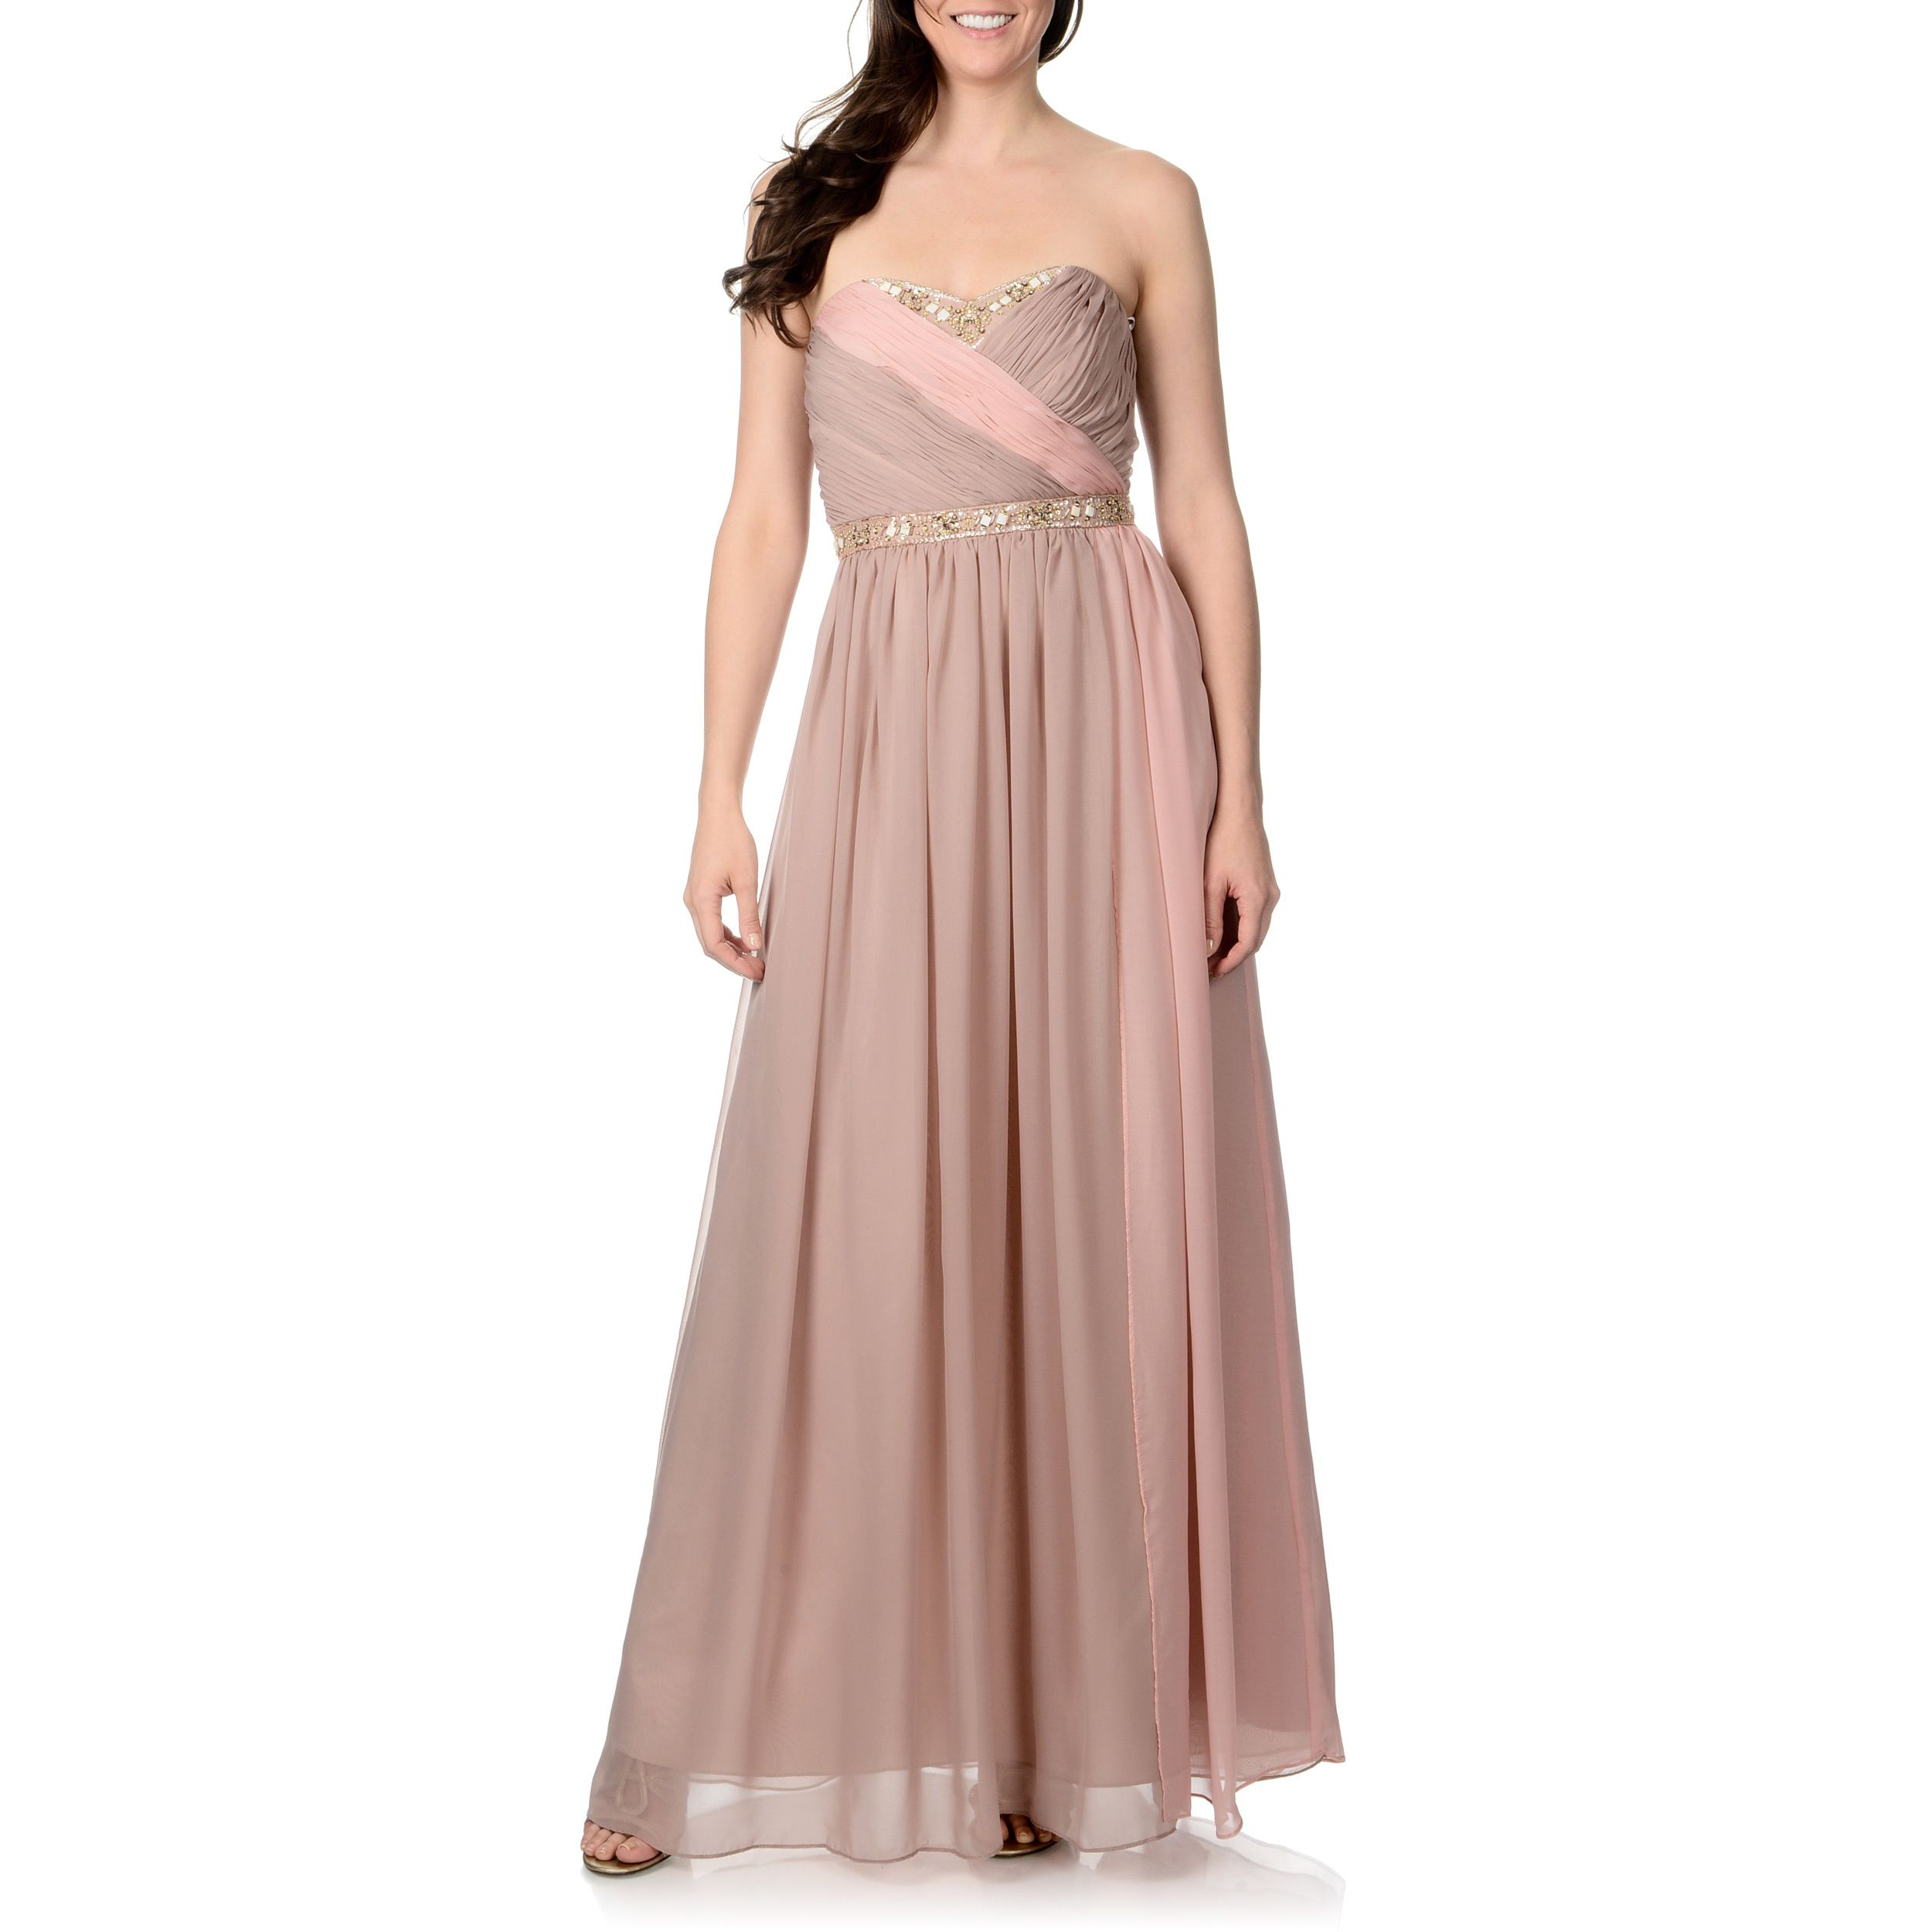 This neutral nude gown from Decode 1.8 is delicately trimmed with ...